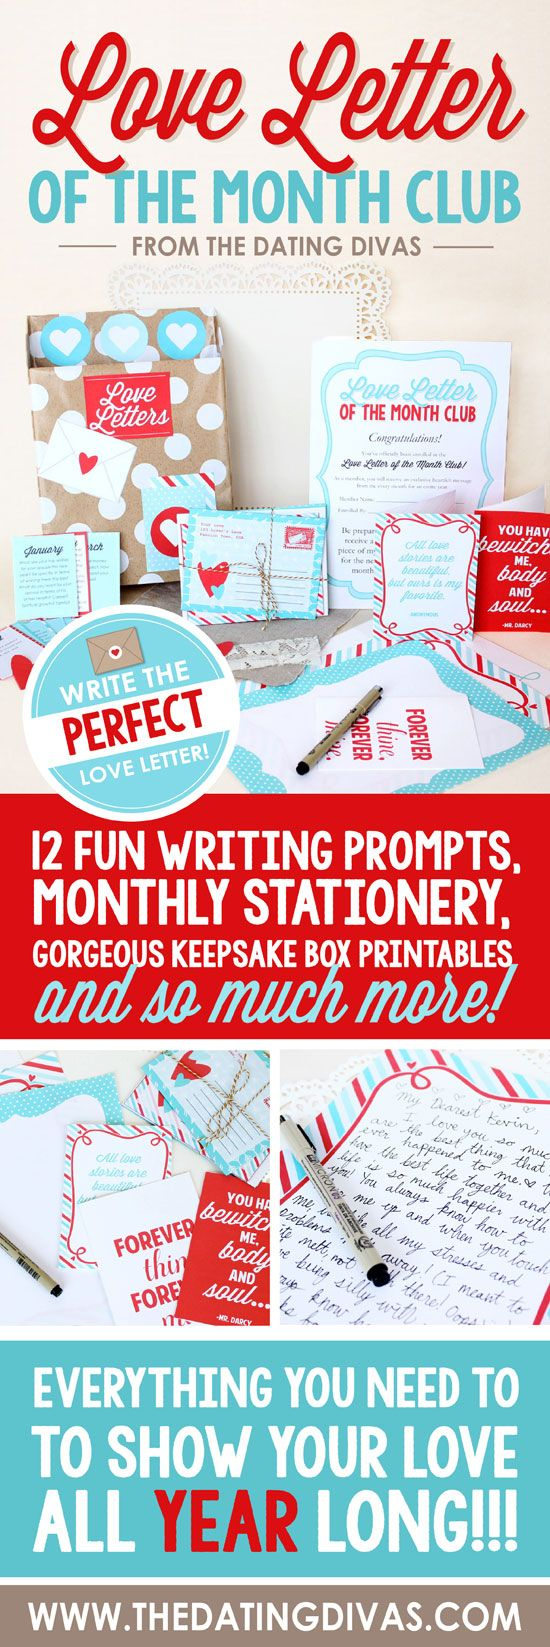 images about Anniversary Ideas on Pinterest   One year     Pinterest